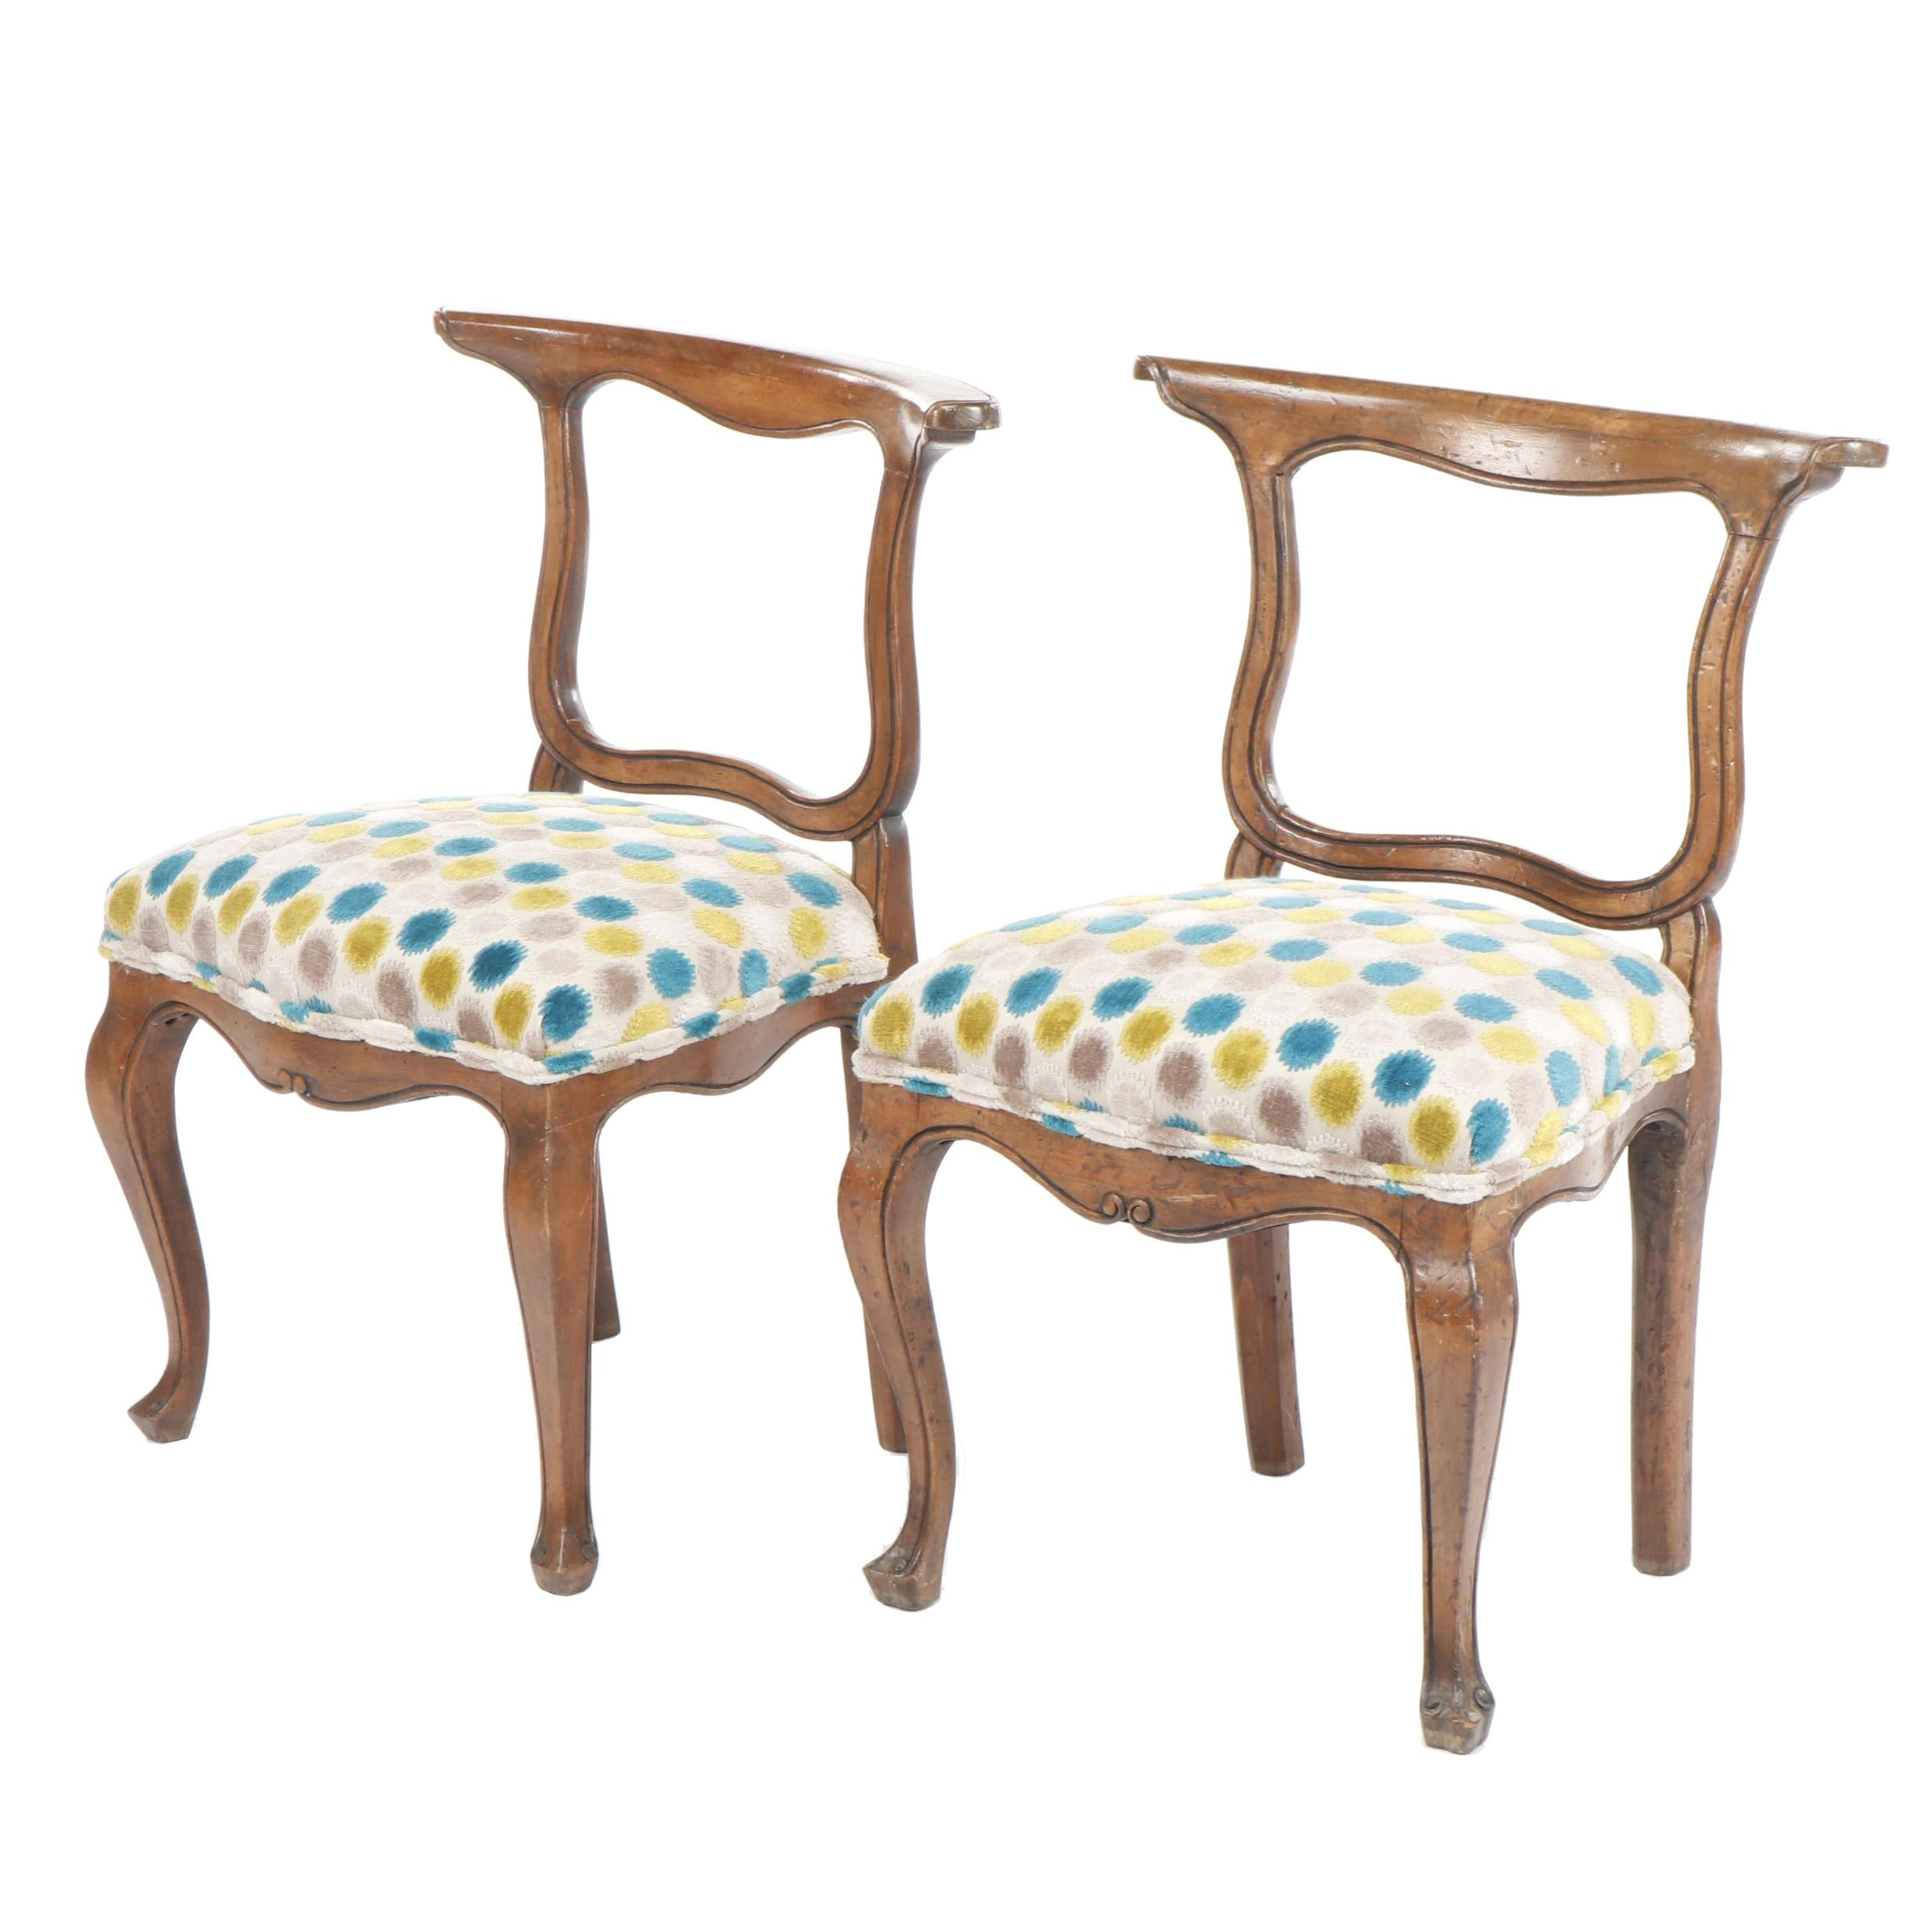 Pair of Louis XV Revival Style Wooden Chairs